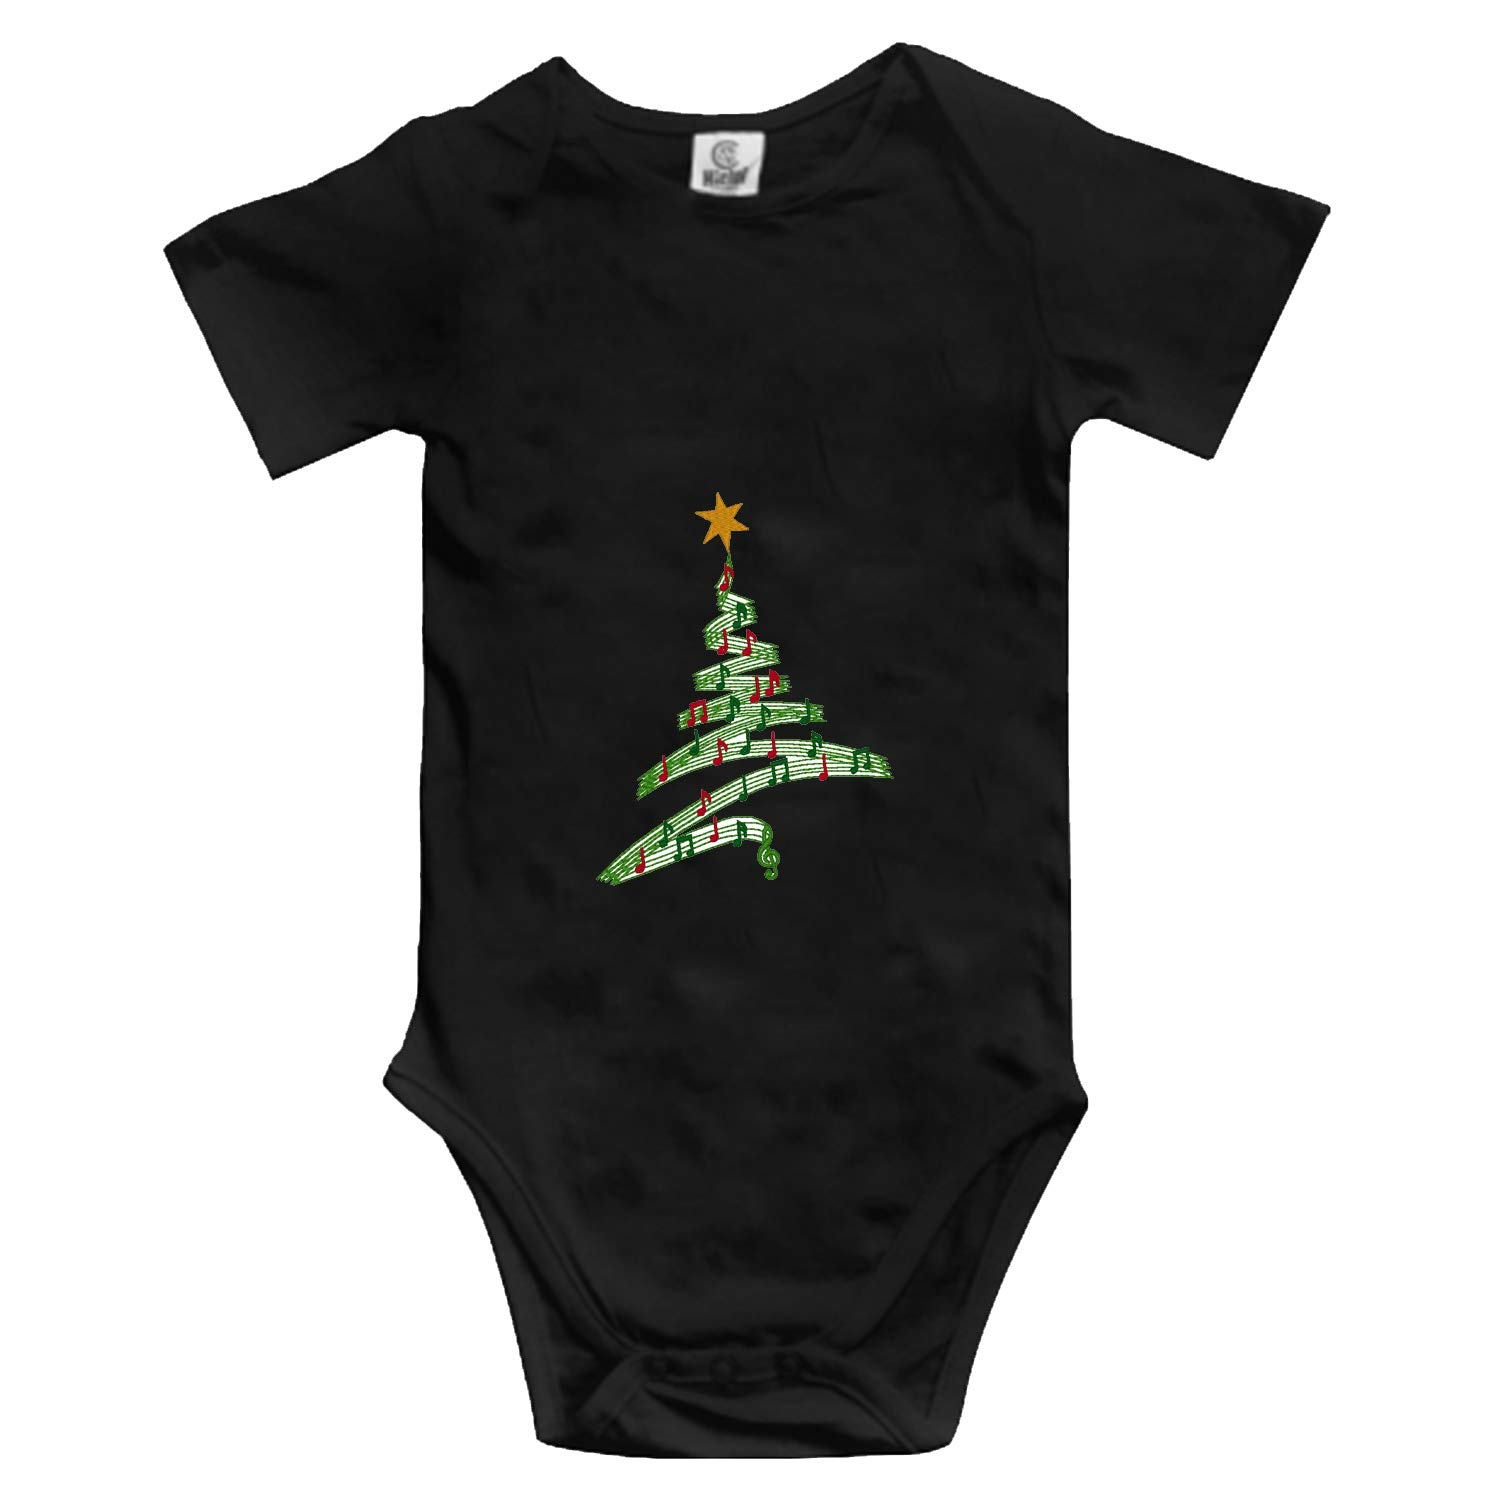 Huazh Merry Christmas Infant Baby Boys Girls Clothing Shirts Short Sleeves Rompers Jumpsuit